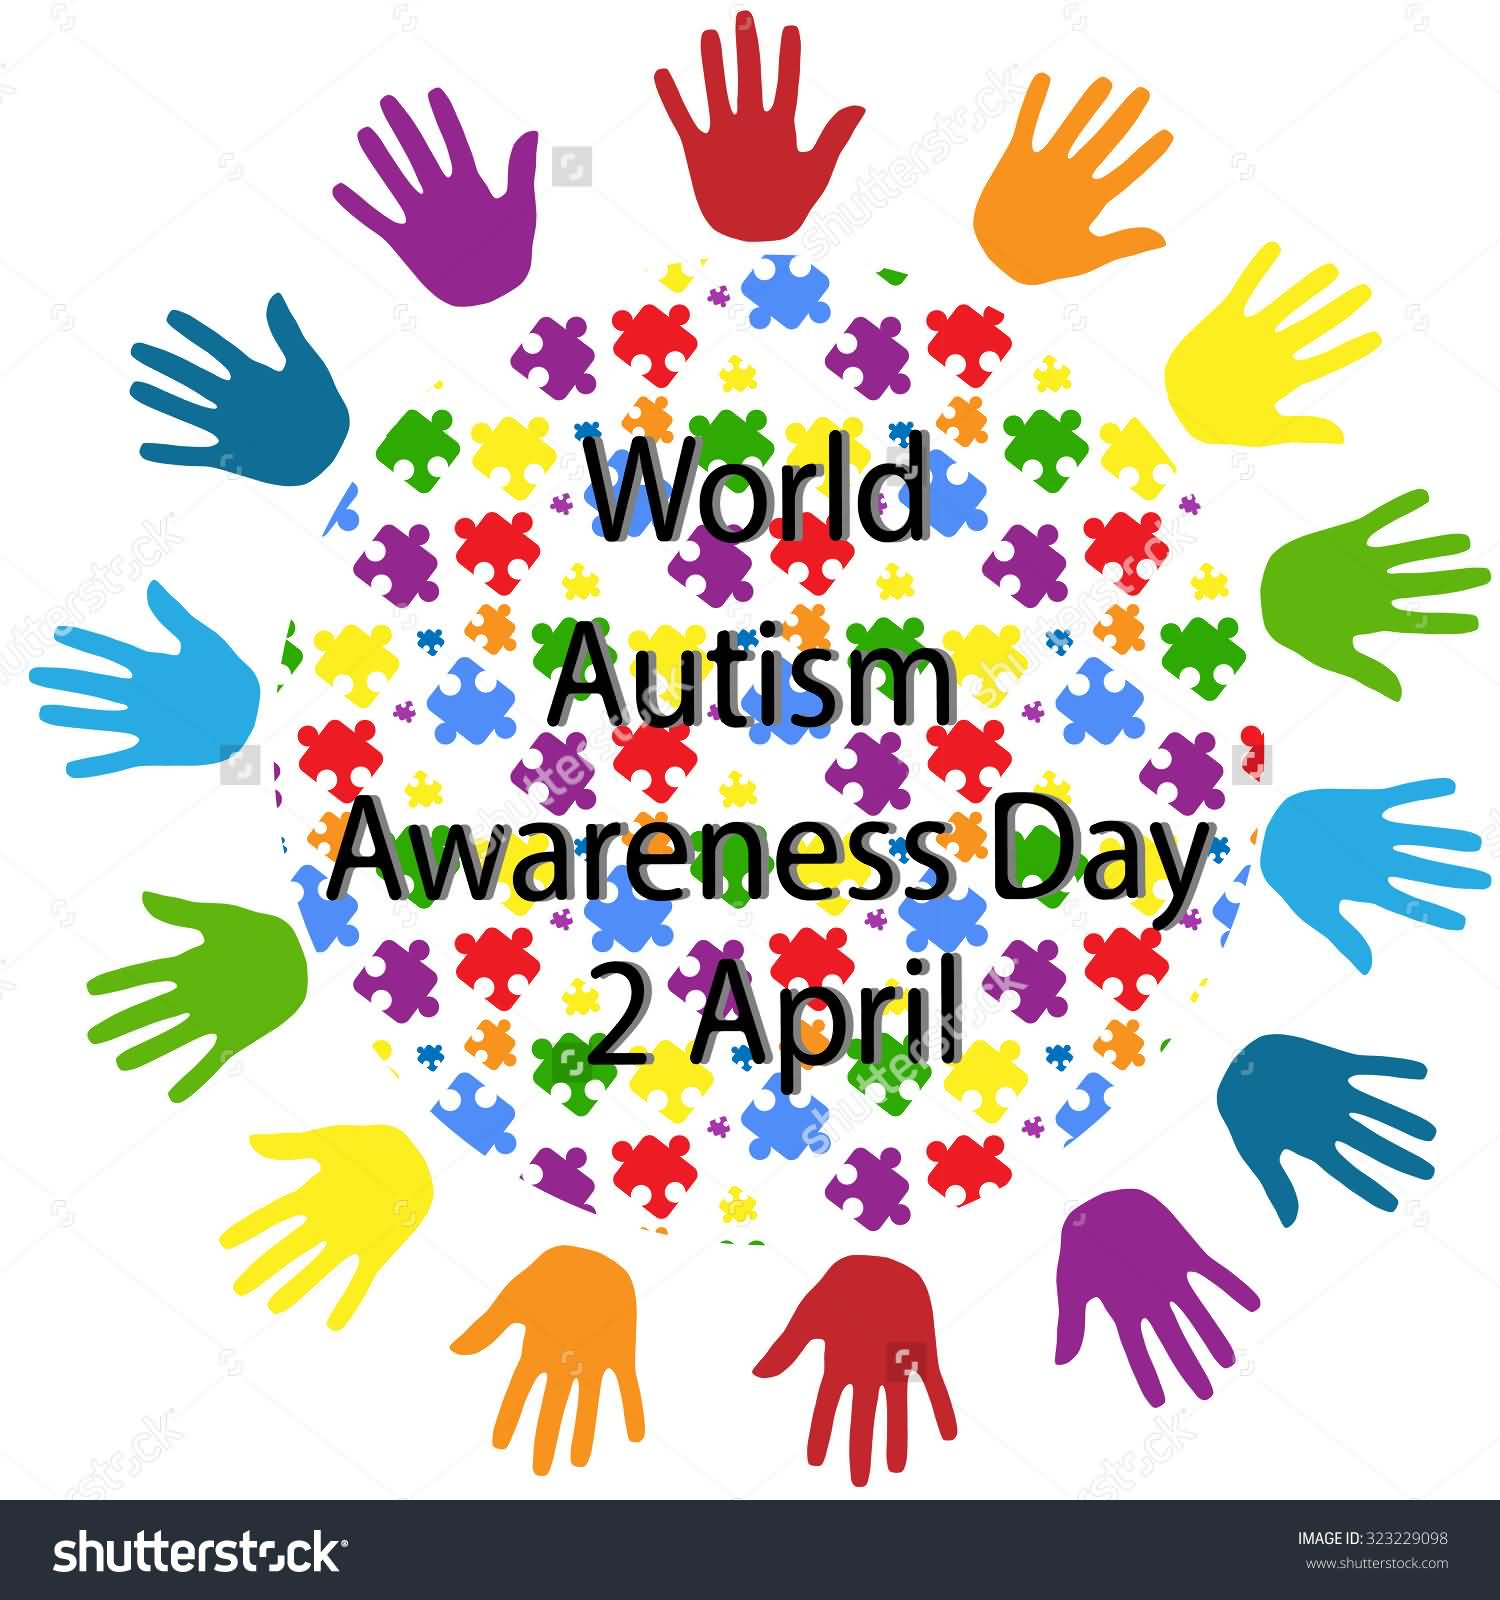 Amazing Autism Awareness Day Pictures